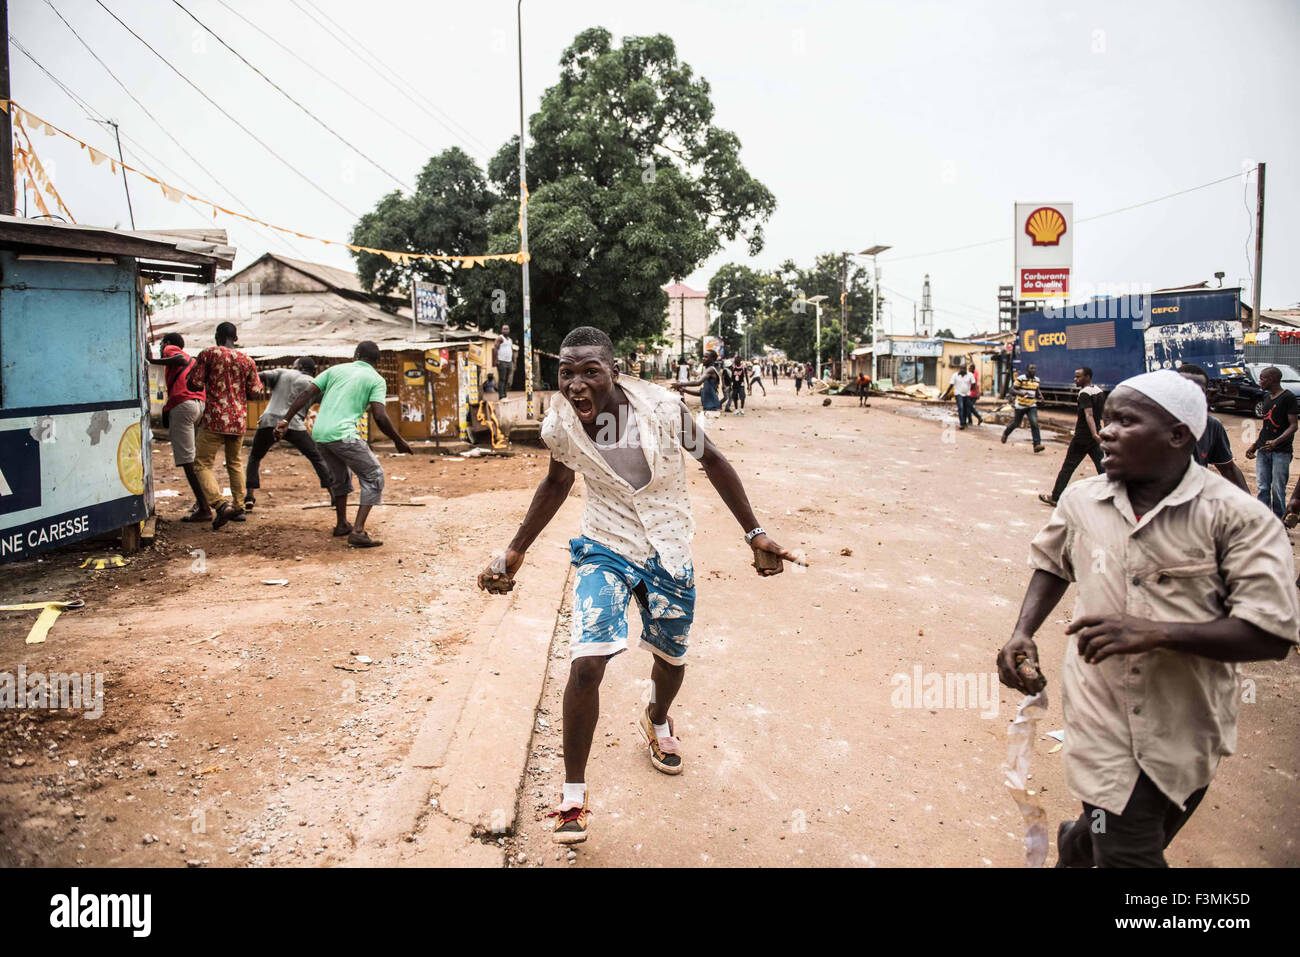 Supporters of the ruling party clash with opposition supporters in Conakry ahead of the country's second presidential - Stock Image